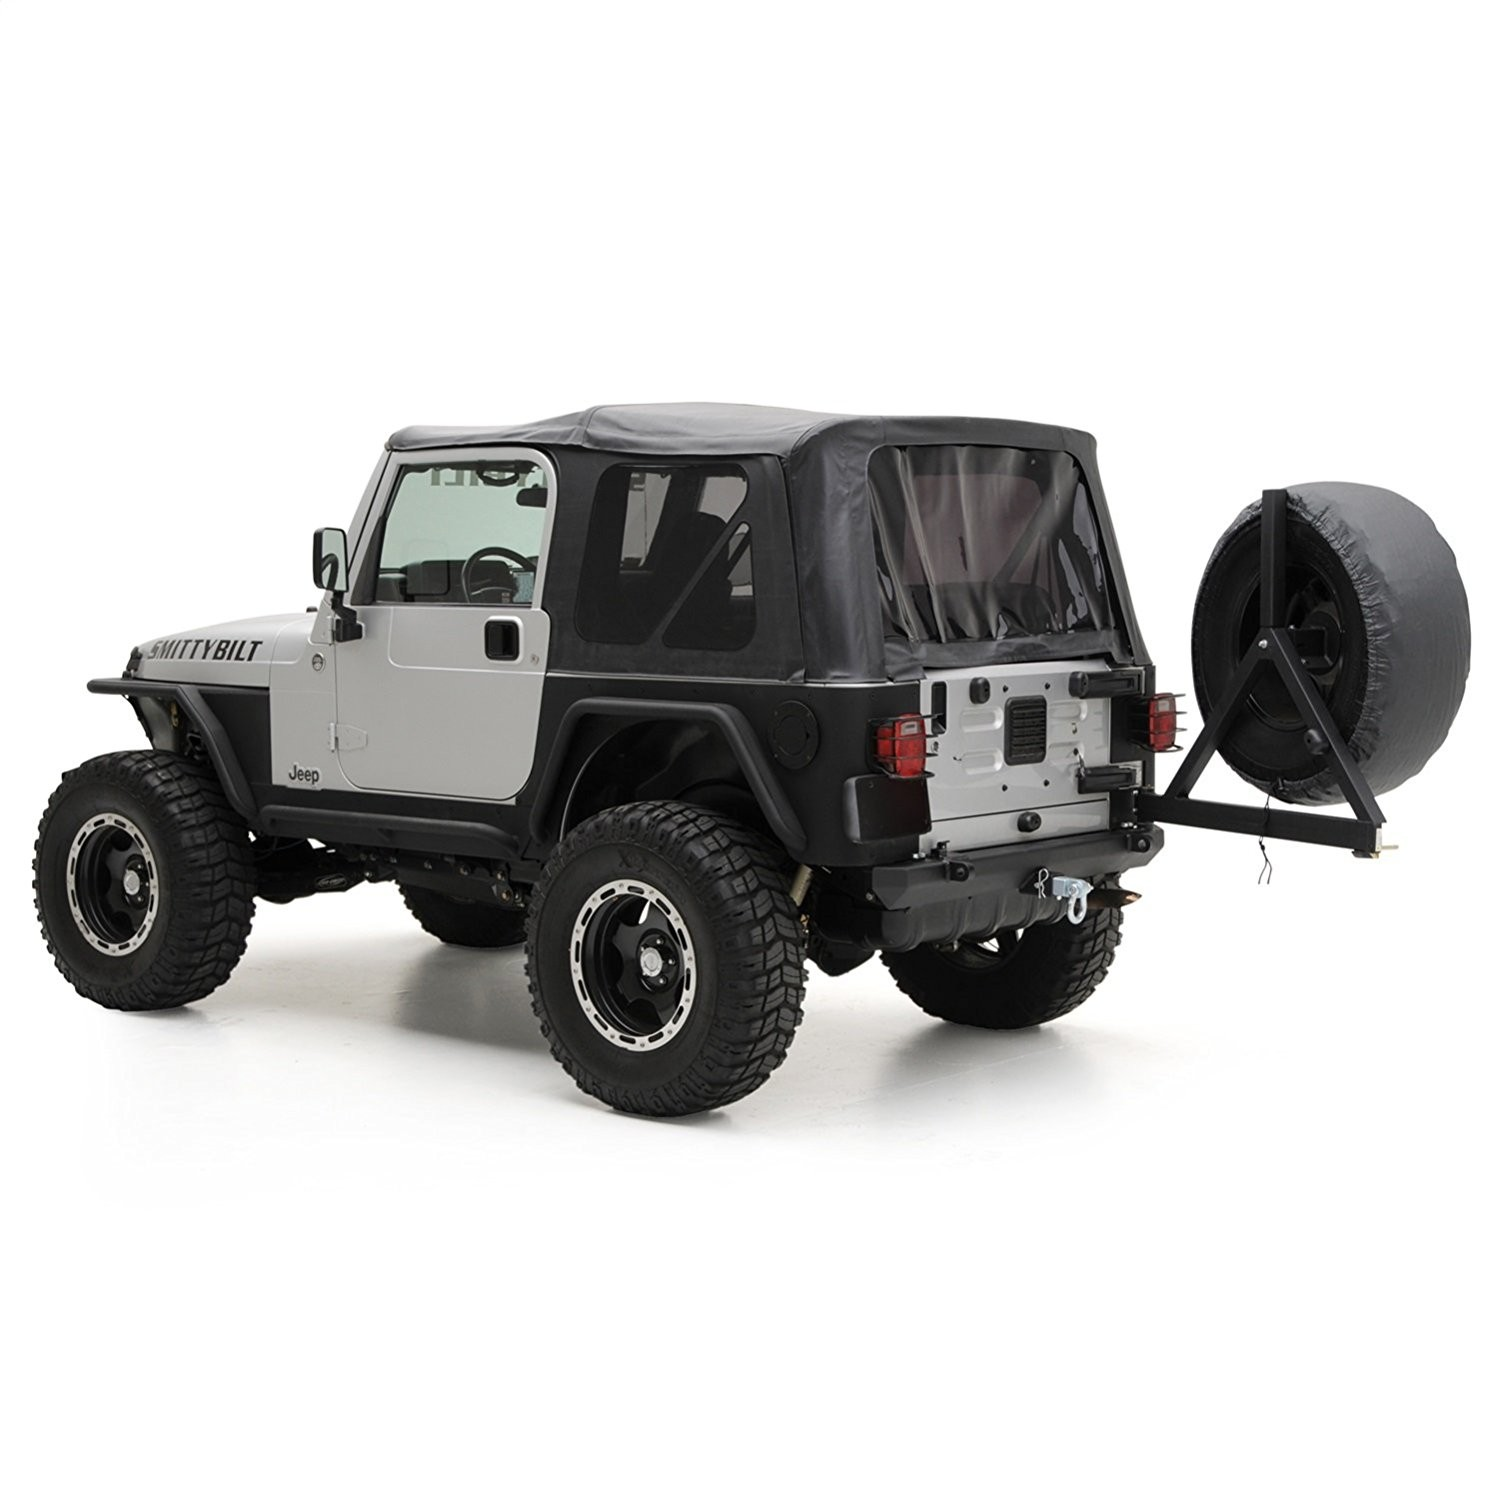 Wiring Diagram For 1997 Jeep Wrangler